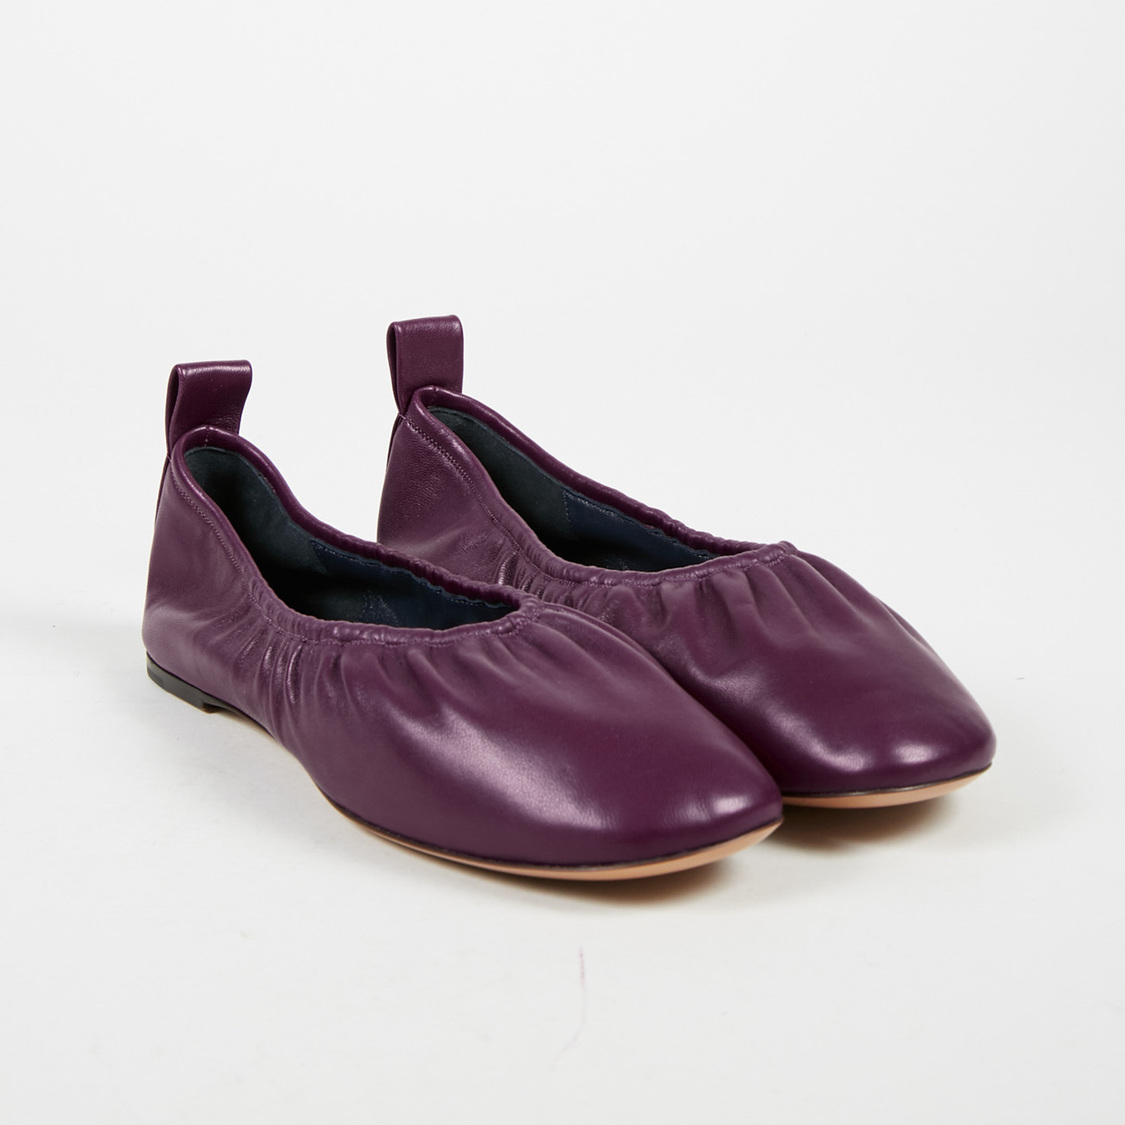 34aa74d48 Details about Celine NWOT Purple Nappa Leather Ballerina Flats SZ 38.5